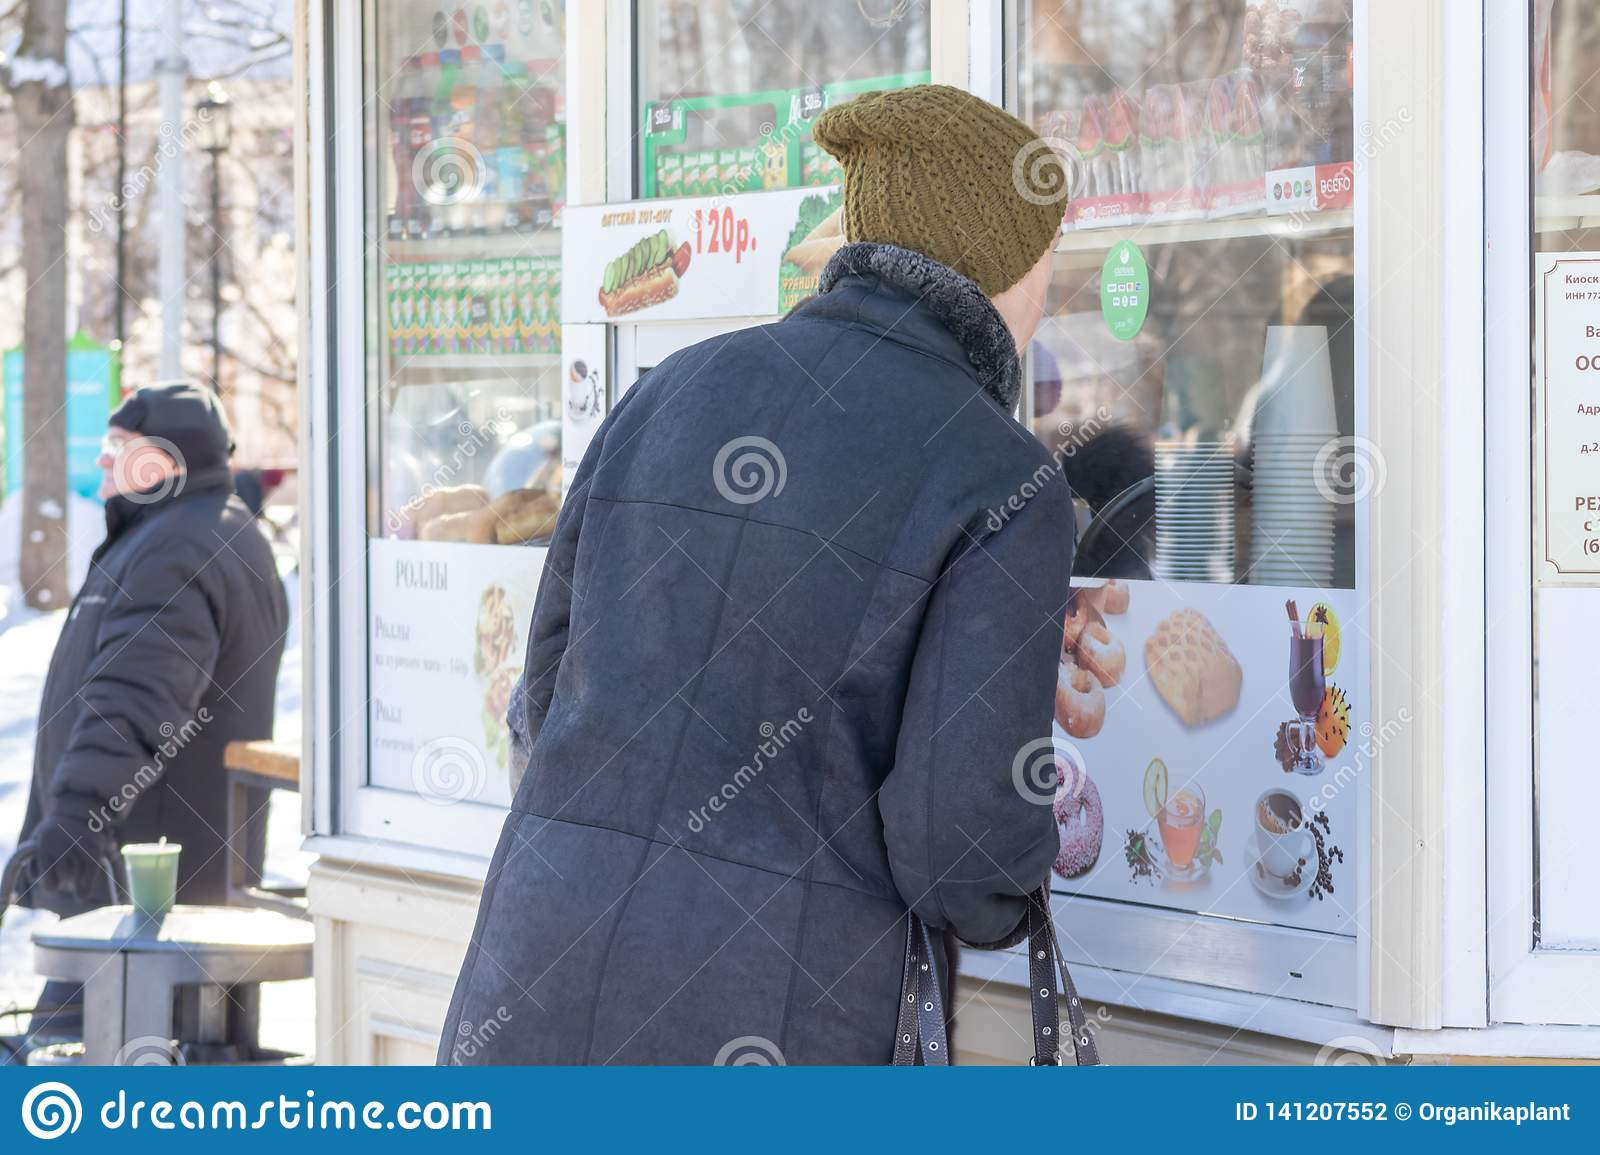 MOSCOW, RUSSIA - MARCH 02, 2019: A man buying street fast food and hot drinks in the stall during the stroll in a city park in